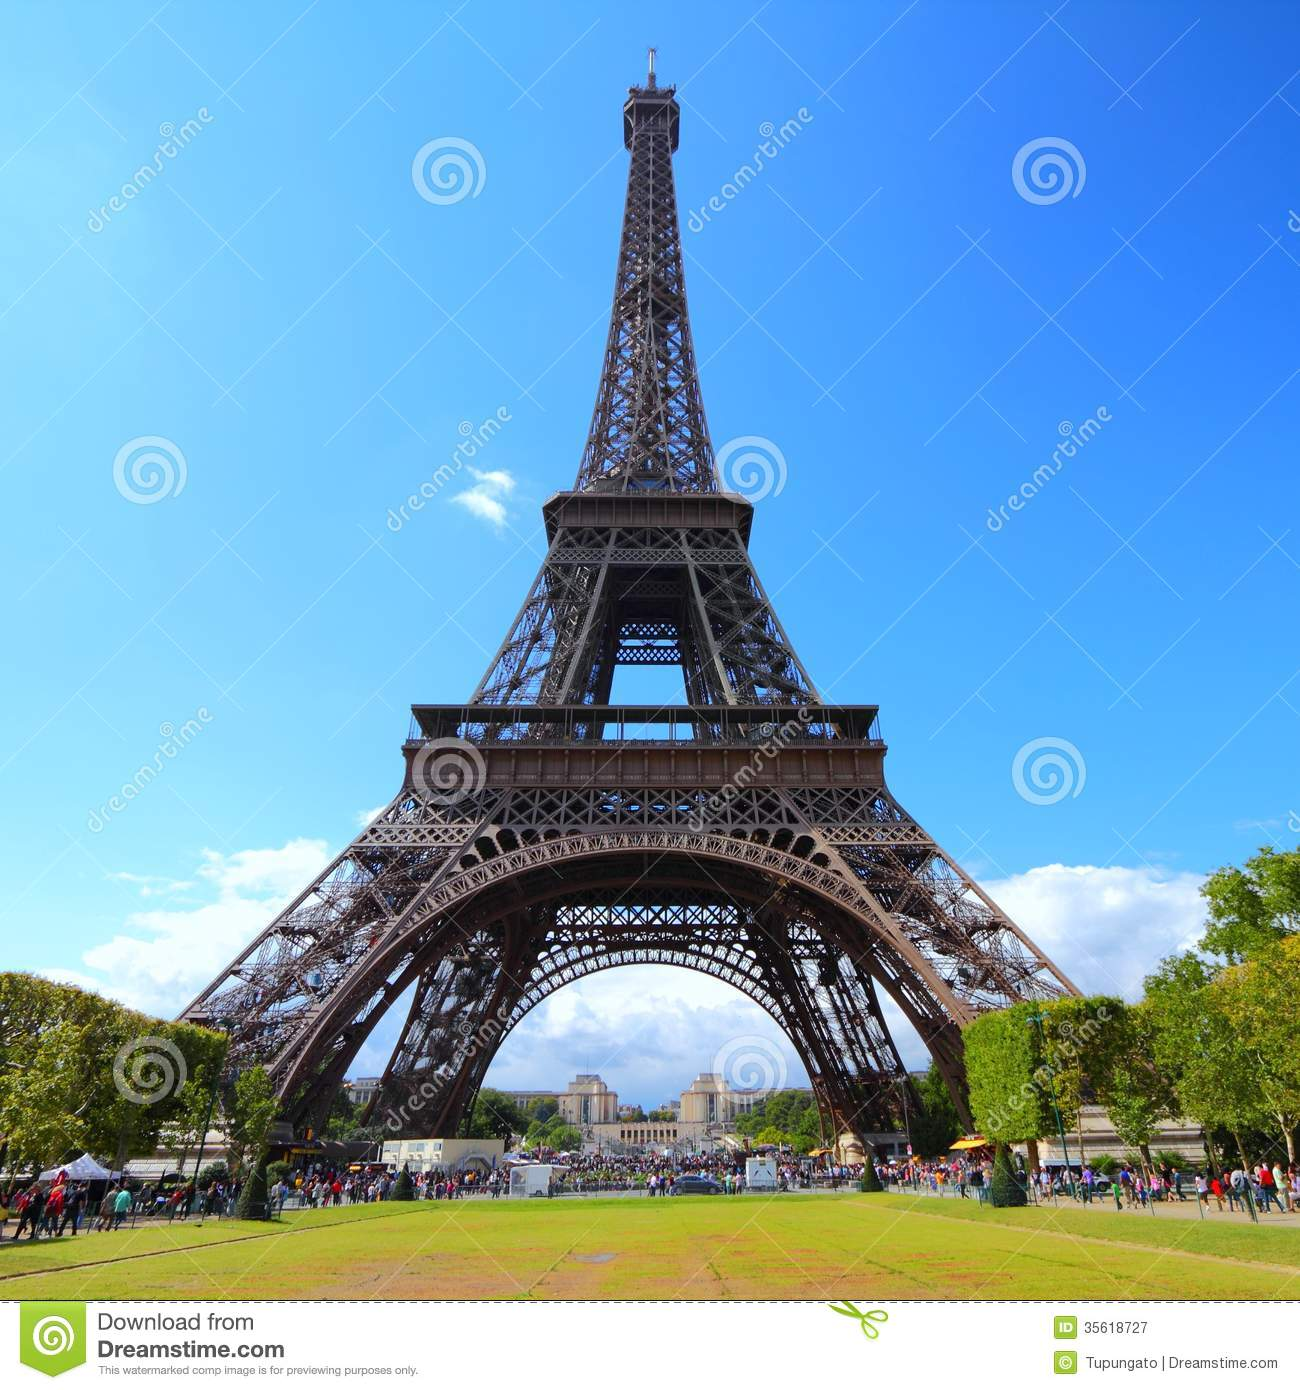 Map Eiffel Tower Area on travel area map, eiffel tower paris map, everest area map, shopping area map, eiffel tower local map, la manche france map, beach area map, seattle space needle area map, san diego convention center area map, eiffel tower site map, paris area map, iguazu falls area map, cairo area map, city area map, horse area map, golden gate bridge san francisco map, statue of liberty area map, coliseum area map, alps area map, eiffel tower district map,